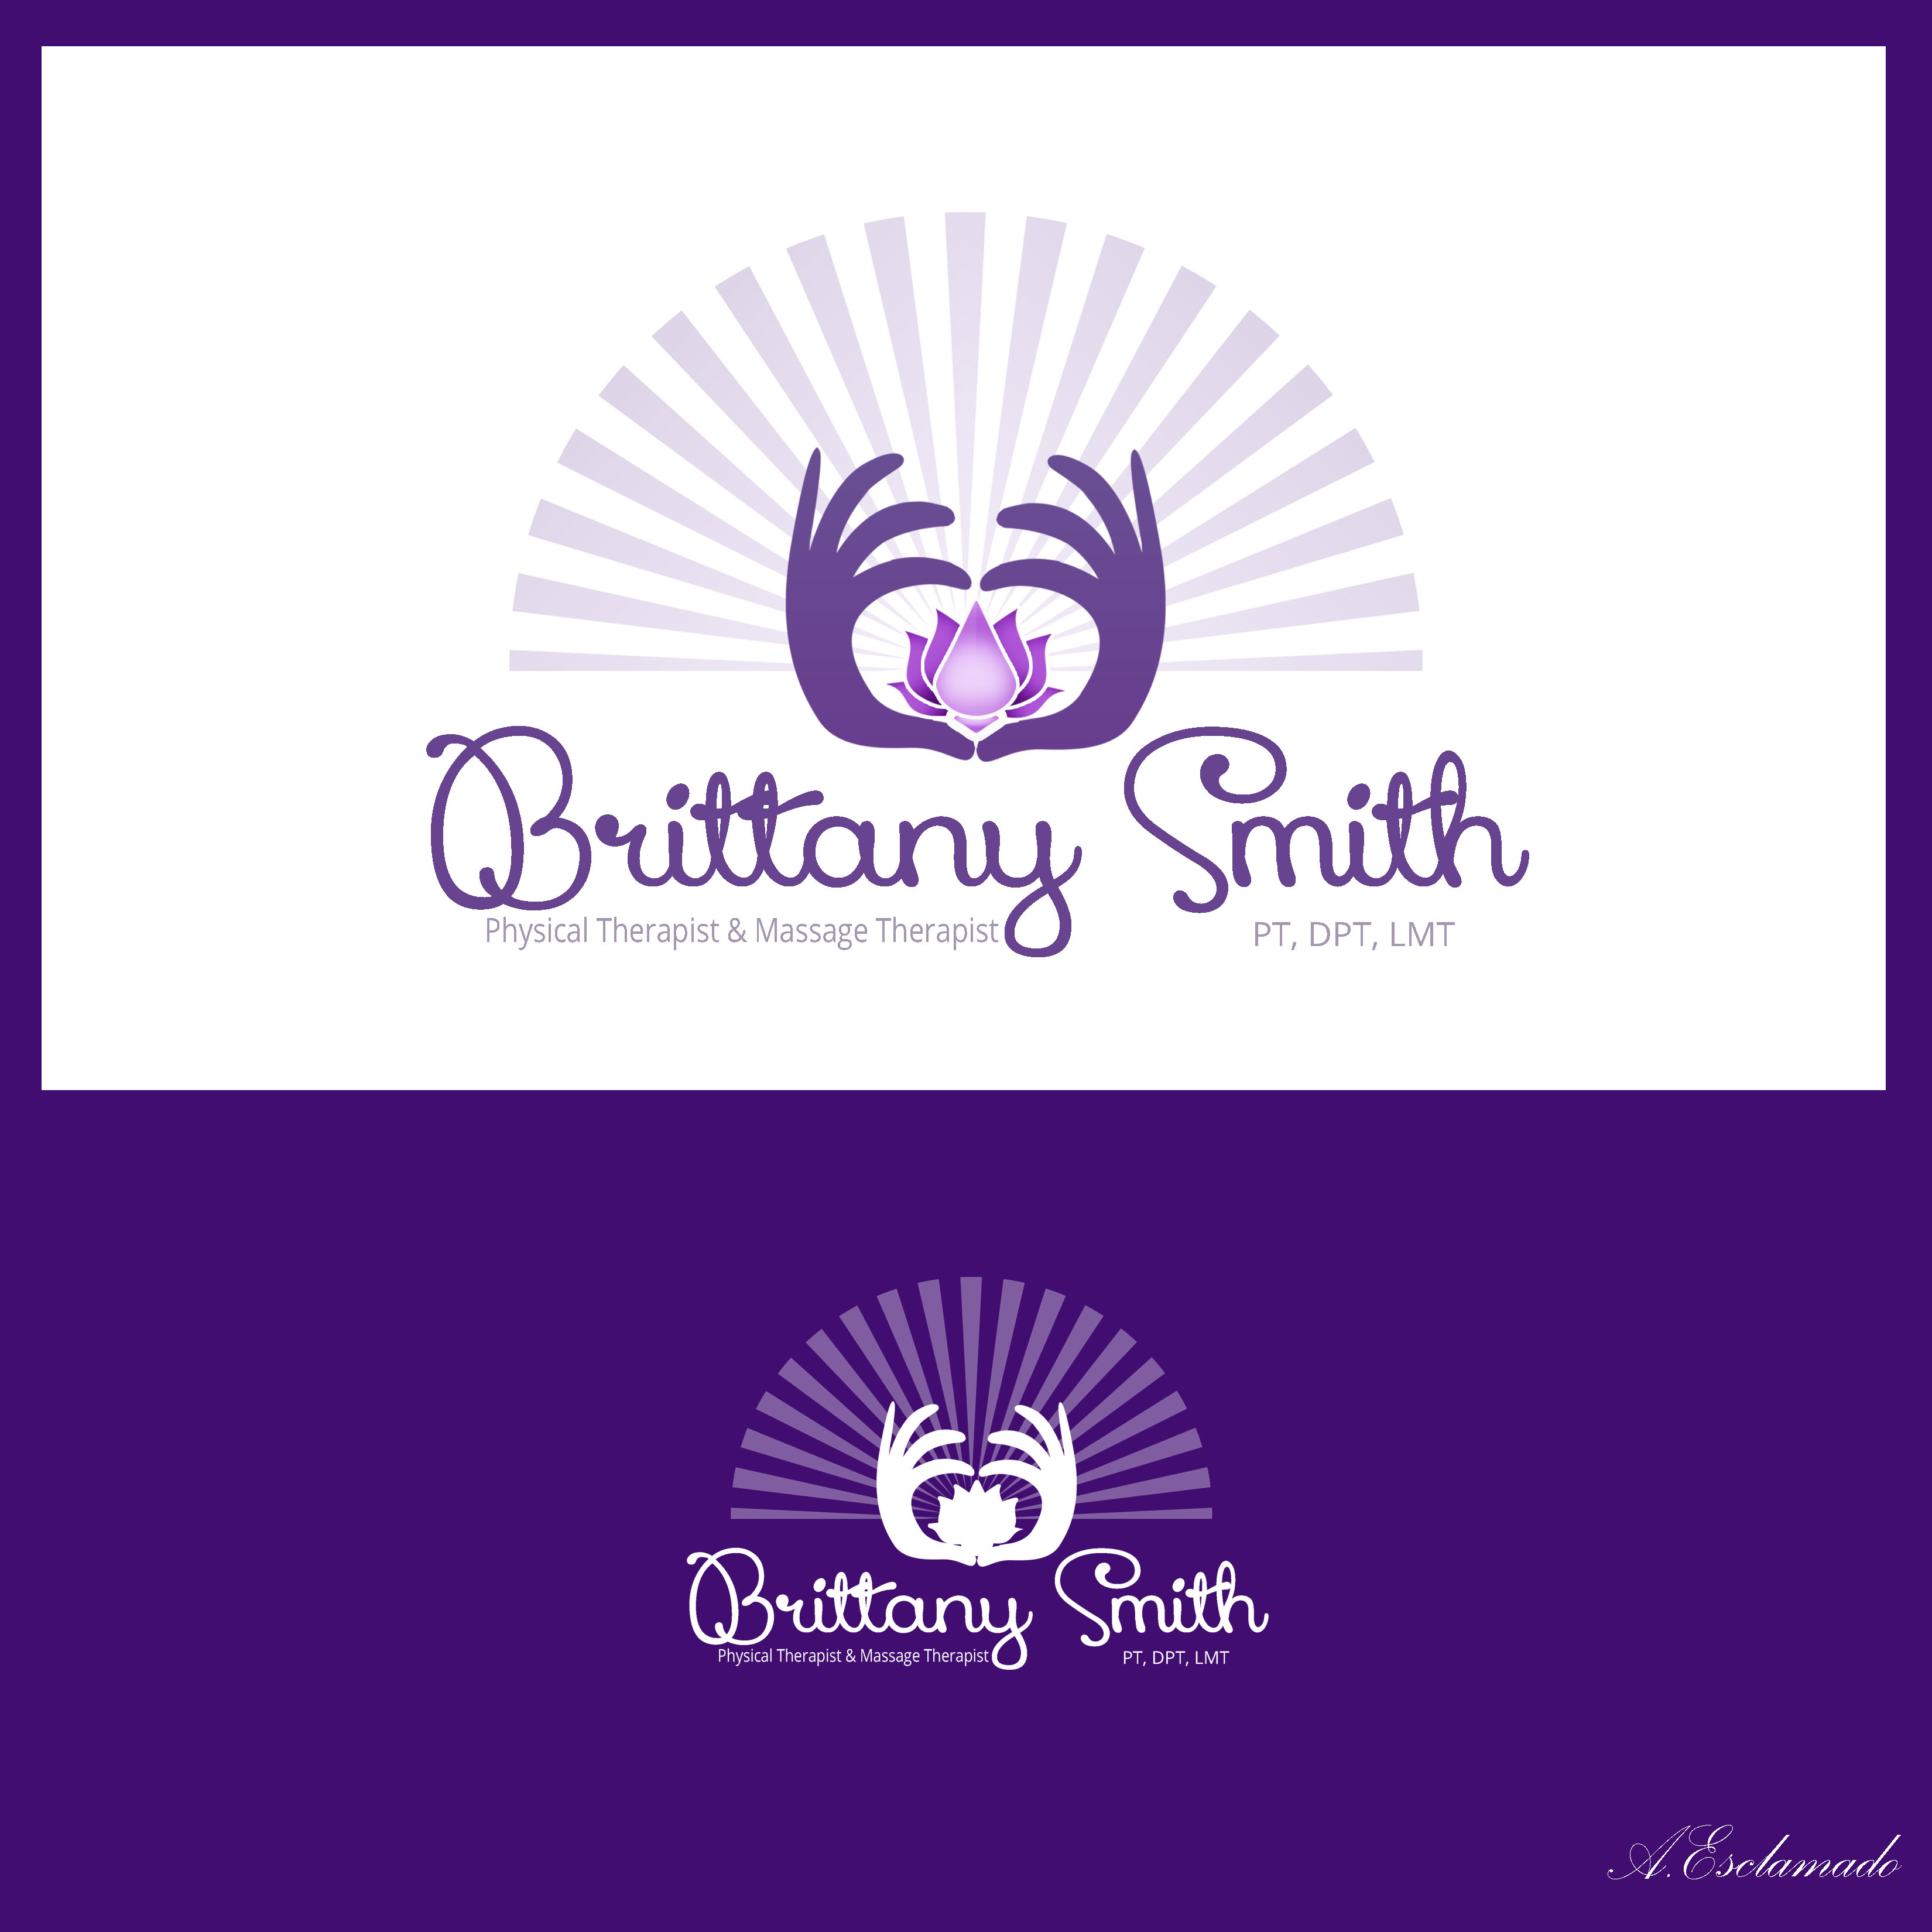 Logo Design by Allan Esclamado - Entry No. 82 in the Logo Design Contest Artistic Logo Design for my personal massage therapy business.